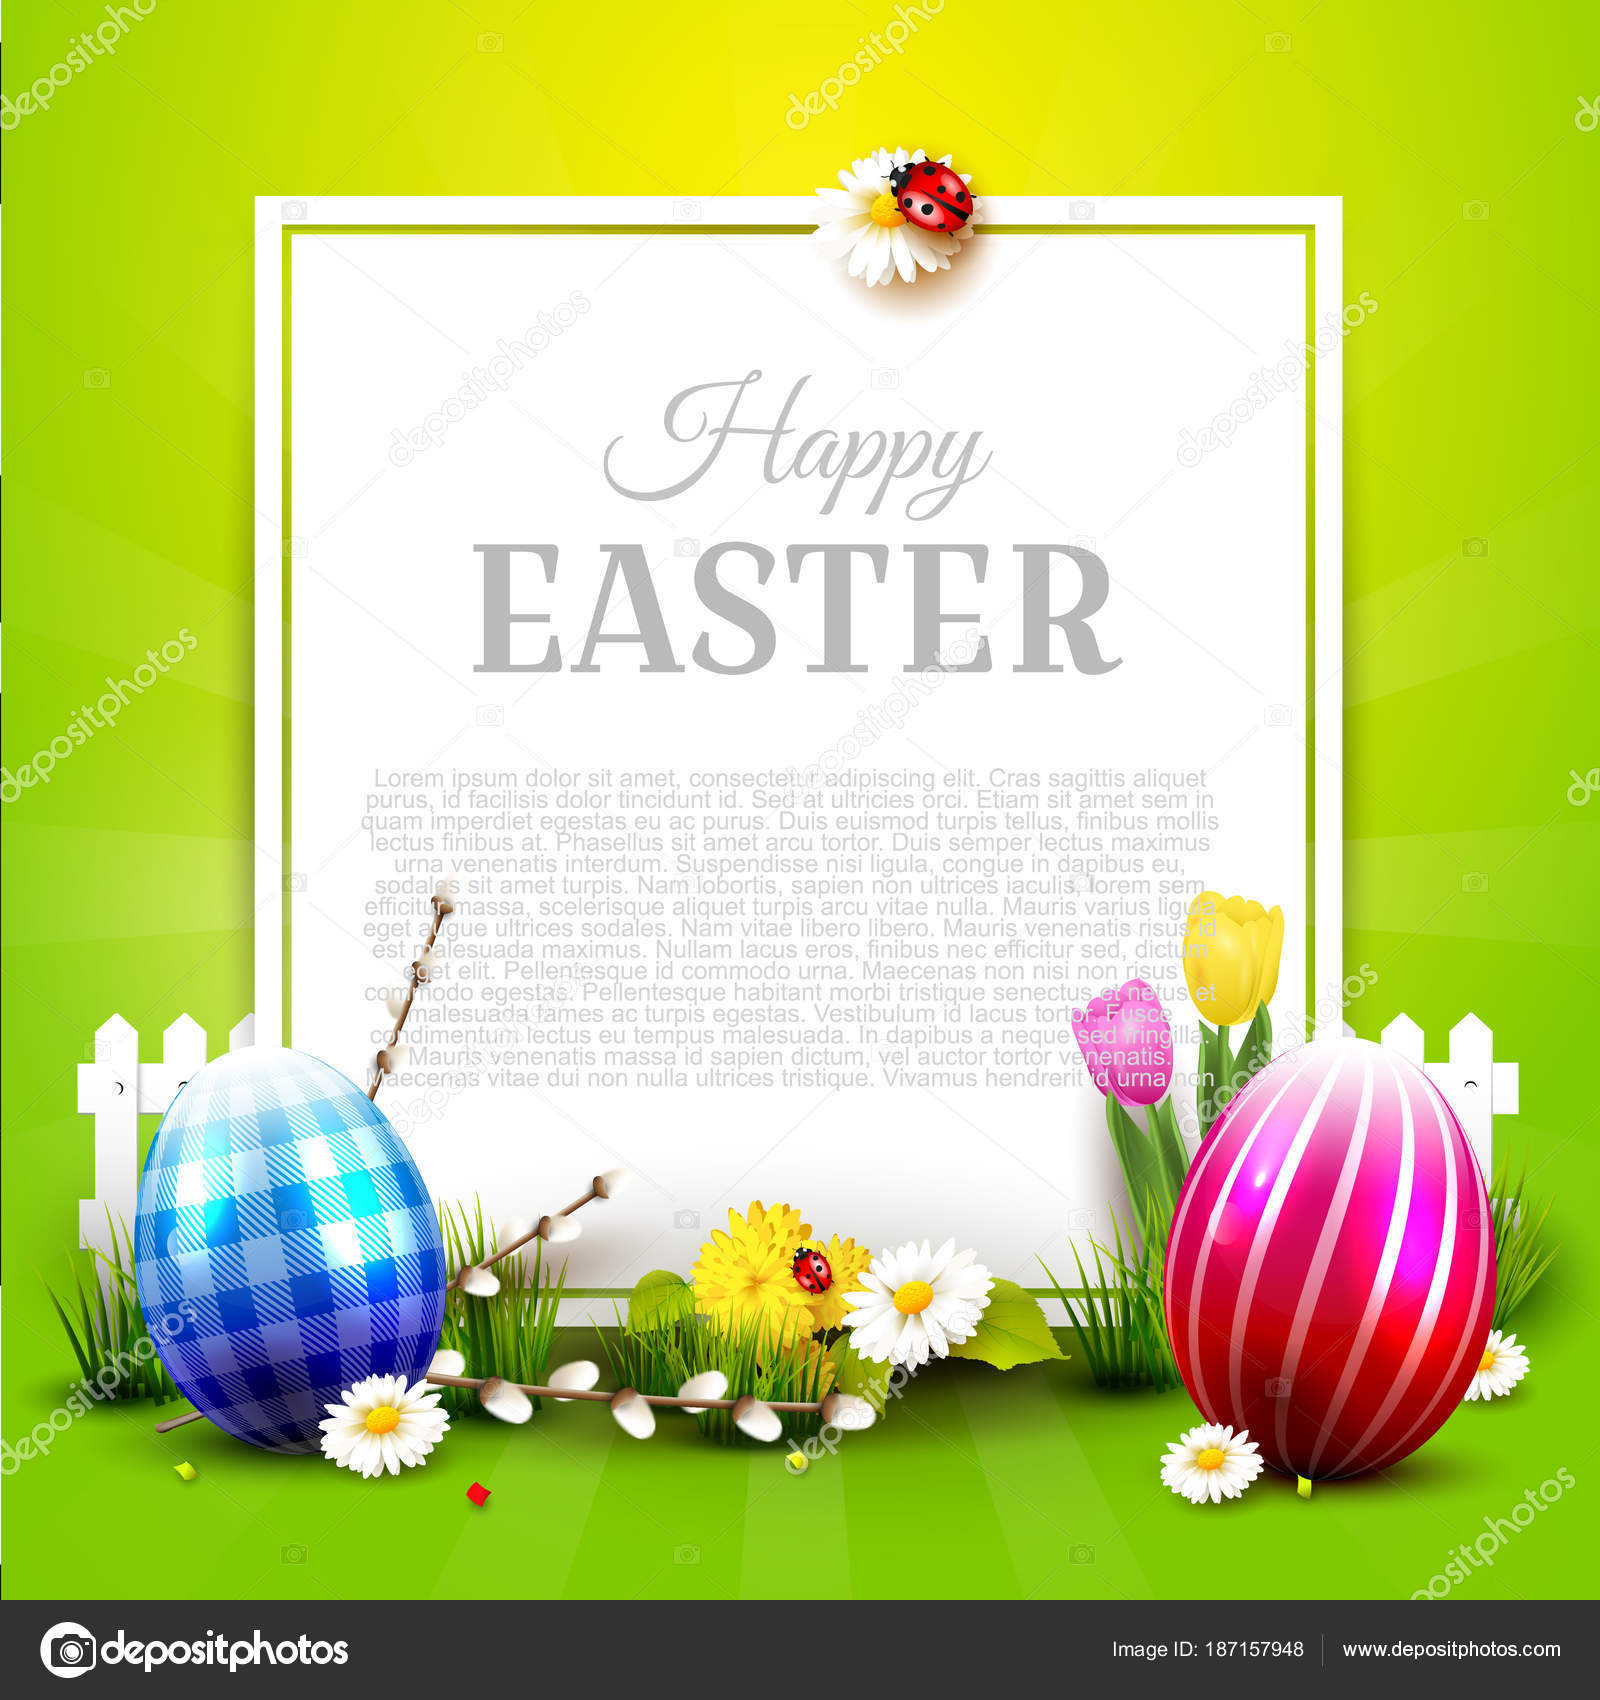 Traditional easter greeting card stock vector kaktus2536 187157948 traditional easter greeting card stock vector m4hsunfo